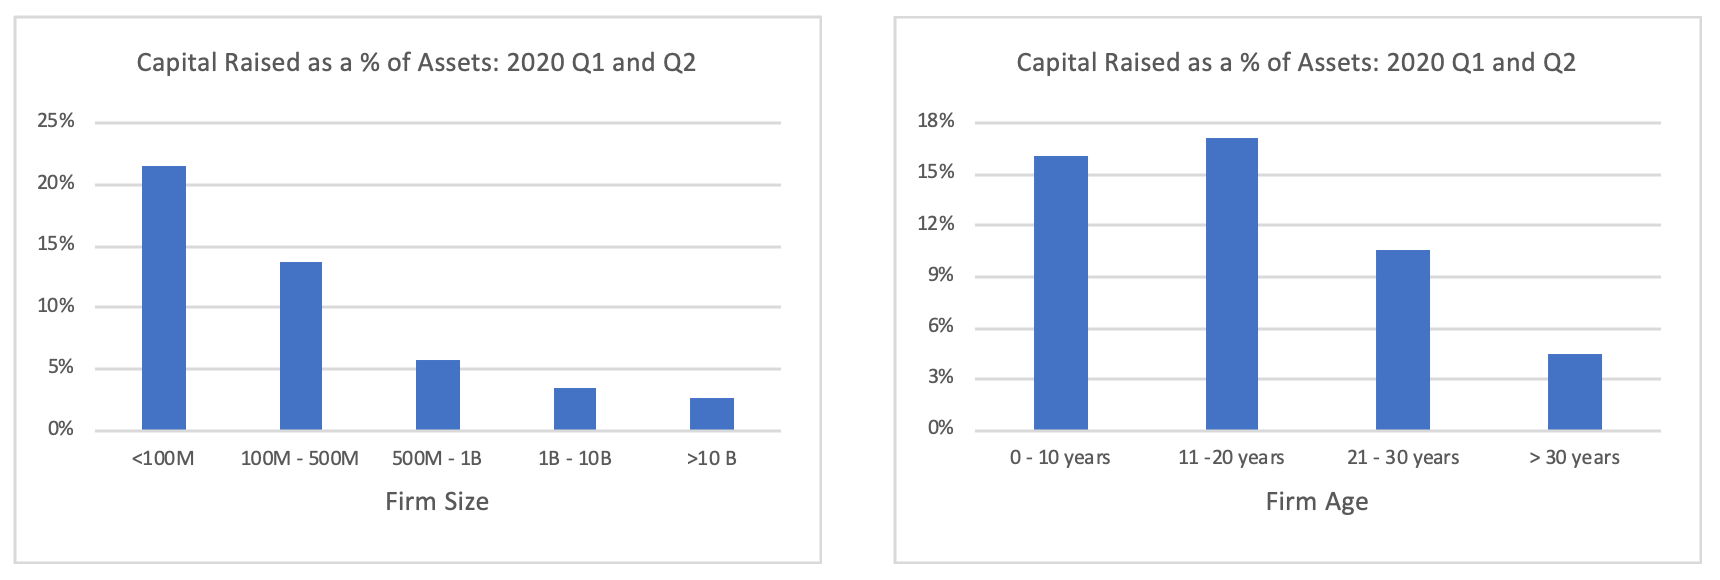 Capital raised as a percent of assets comparing firm size and age